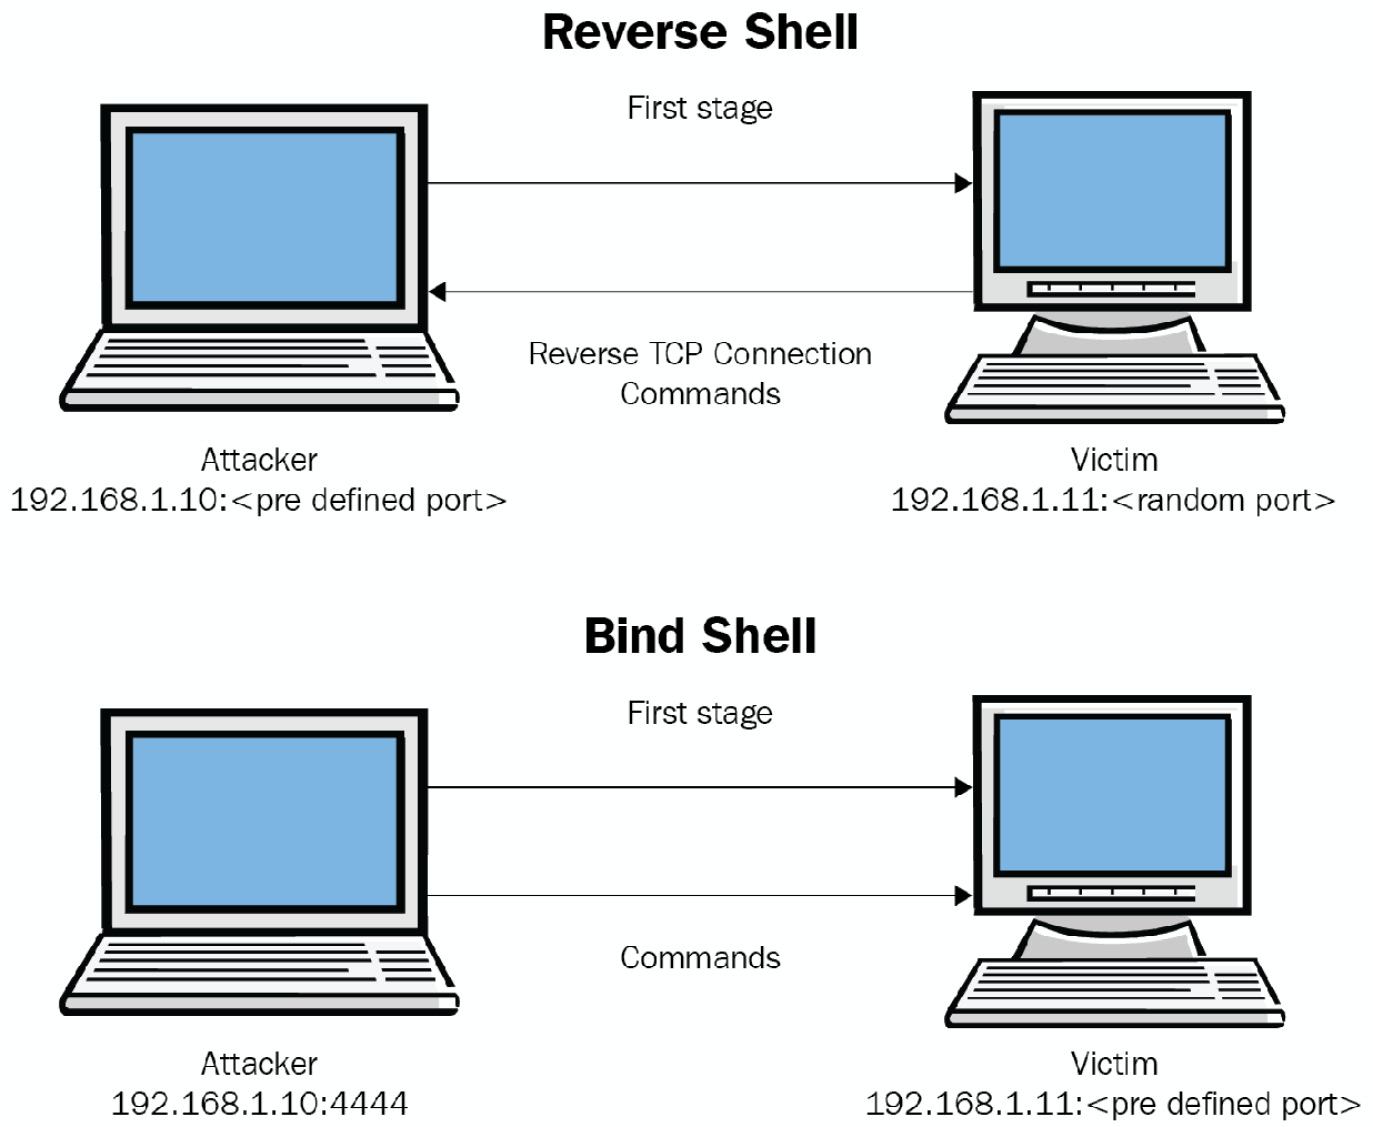 Figure 1.4 – Reverse shell and bind shell